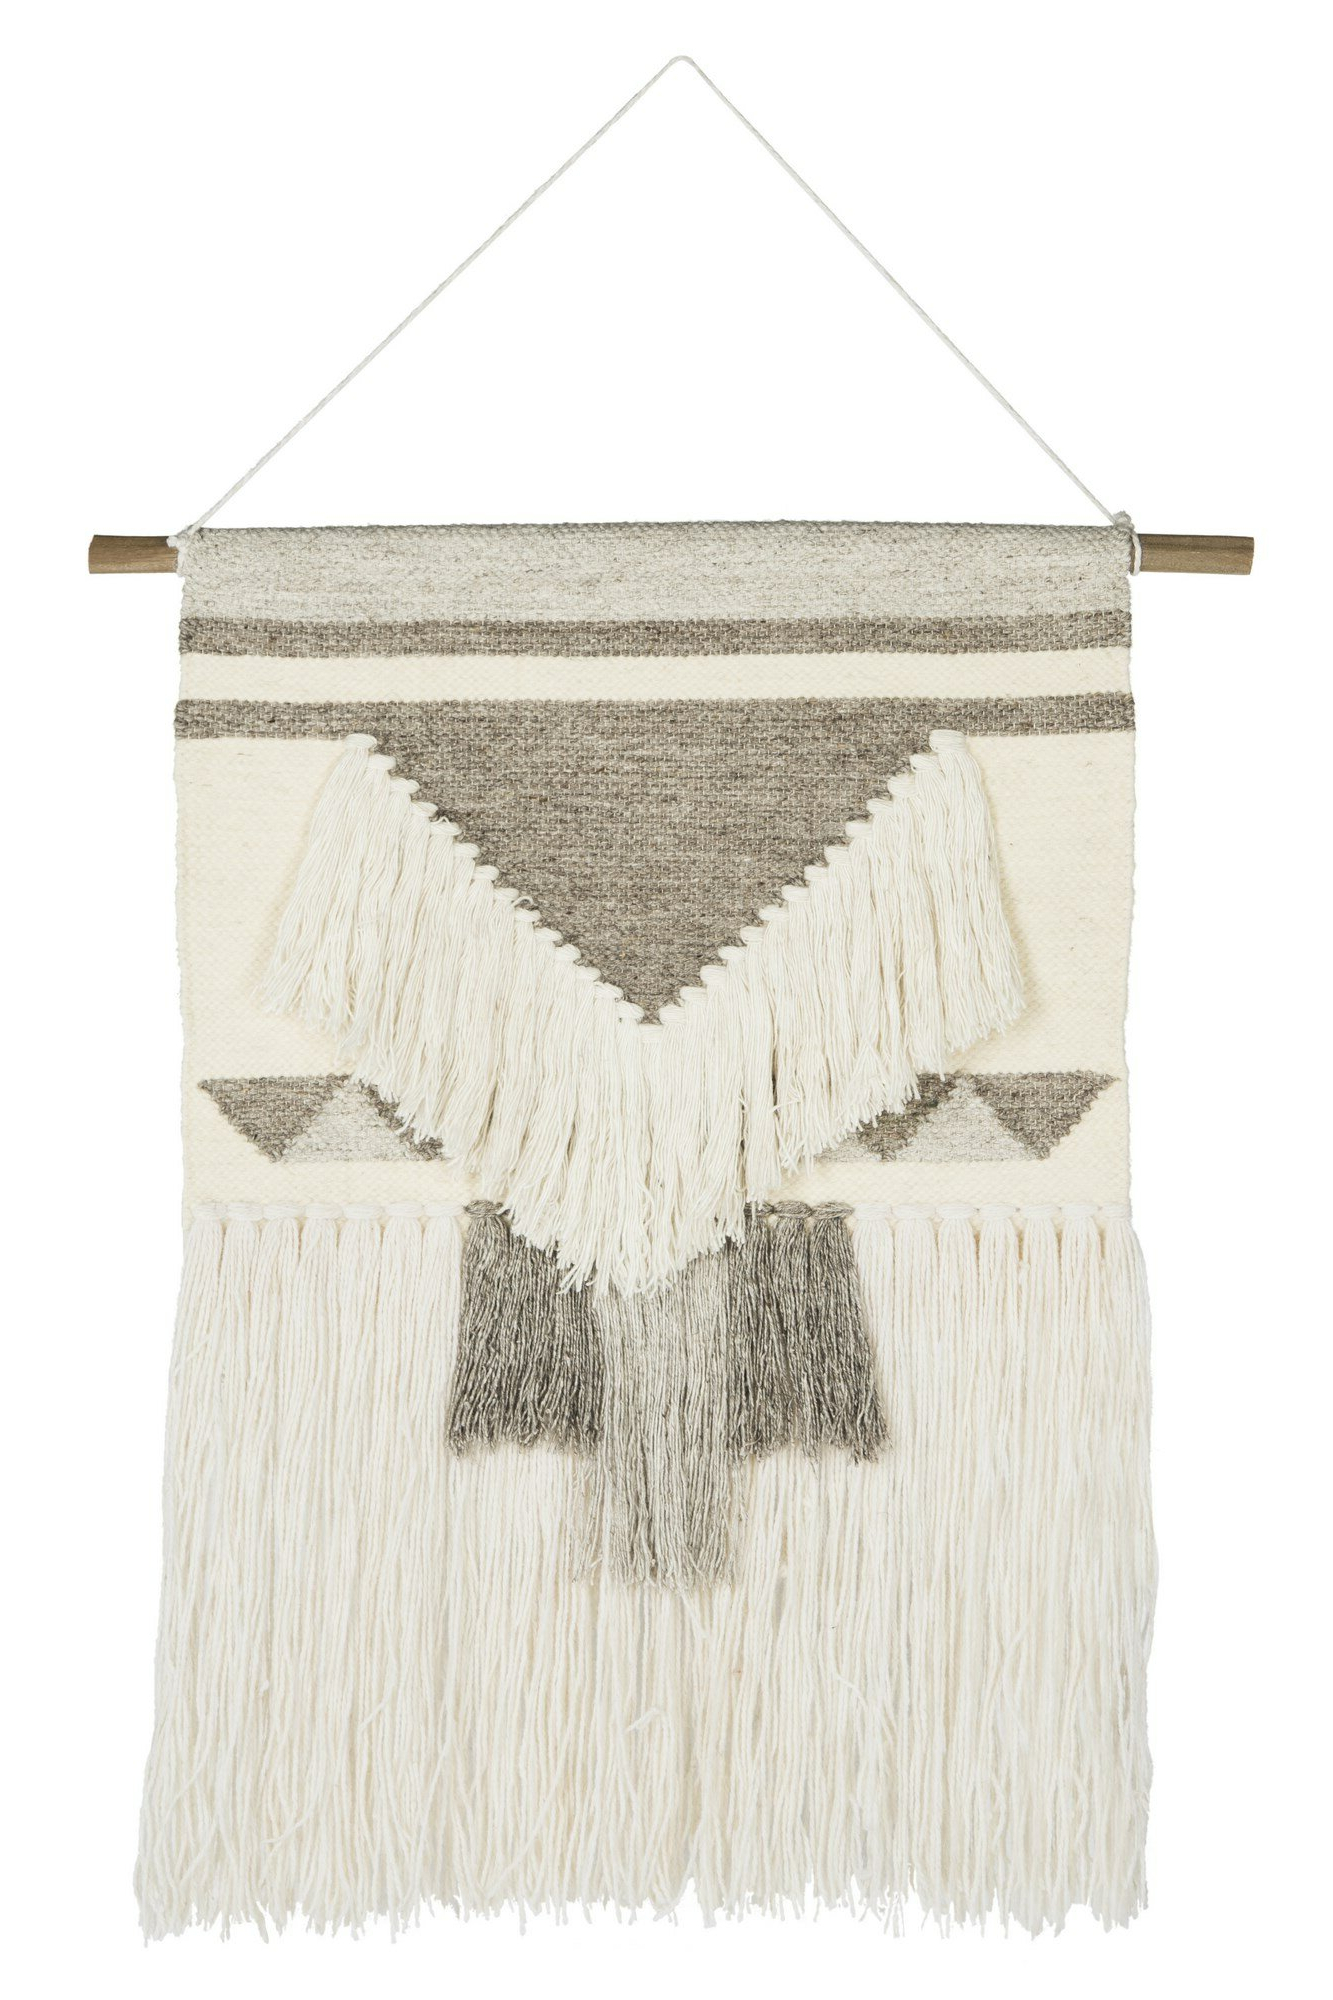 Favorite Blended Fabric Teresina Wool And Viscose Wall Hangings With Hanging Accessories Included Regarding Wool Wall Hanging (View 7 of 20)